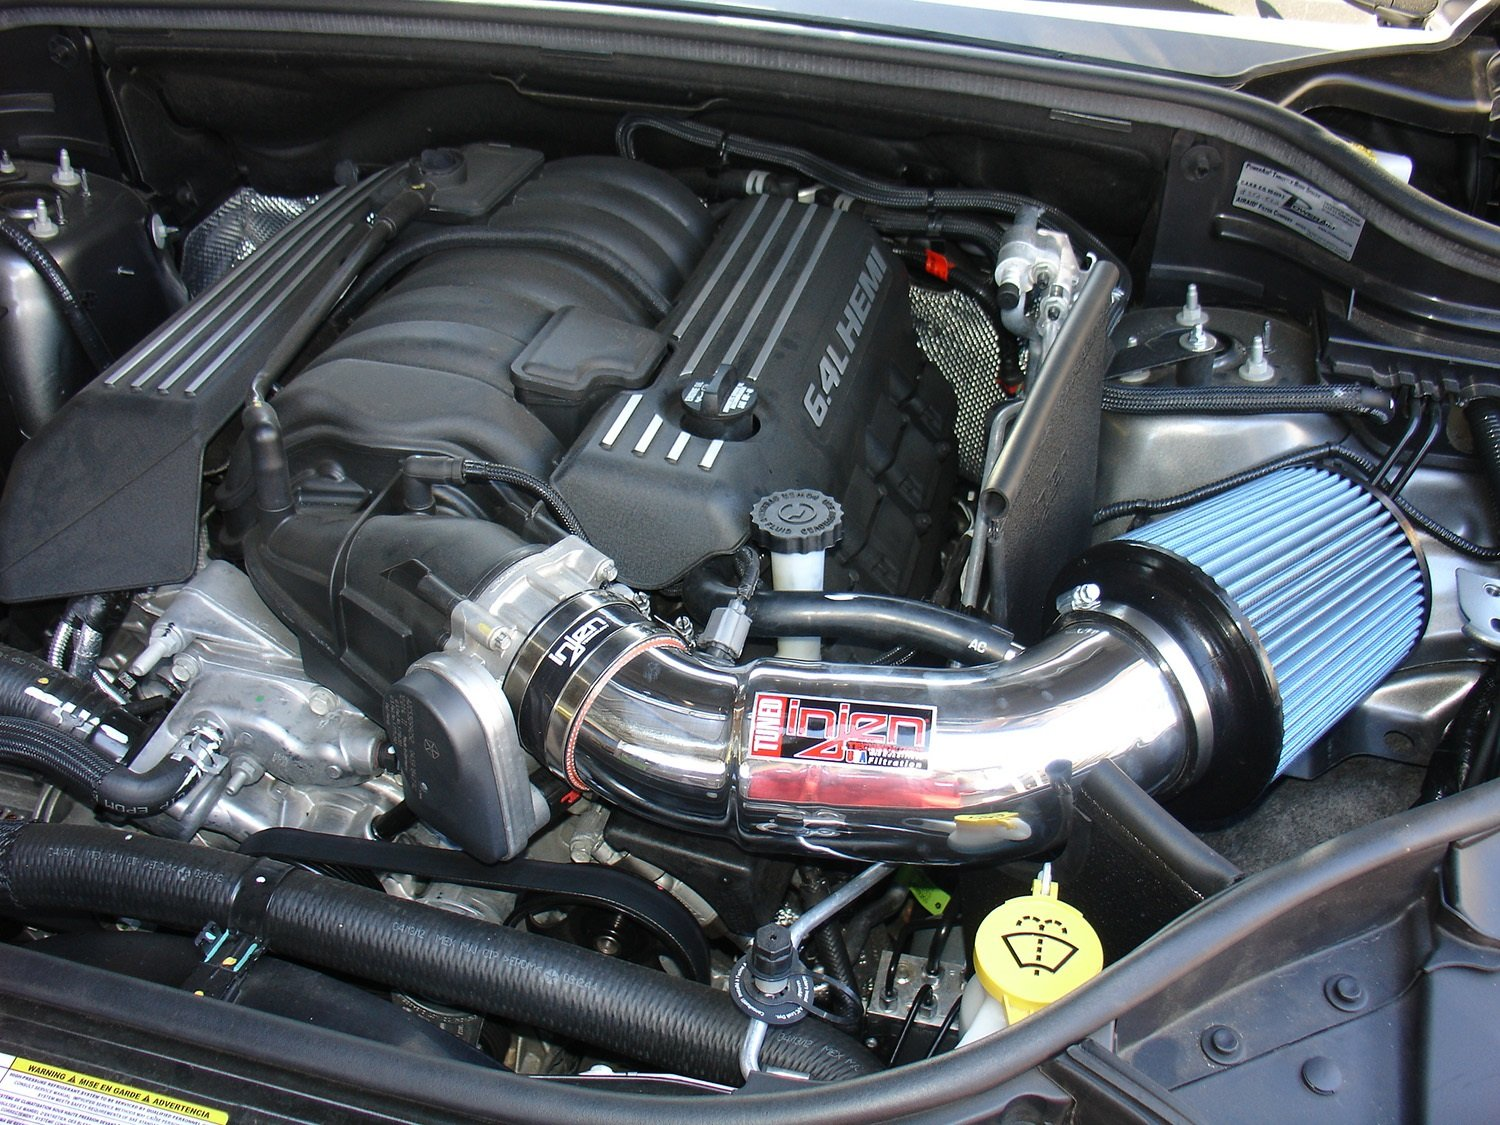 Injen Jeep 2013 Grand Cherokee SRT-8 V8 6.4L Tuned Air intake with MR Technology Heat shield and Super Nano-web Dry Filter